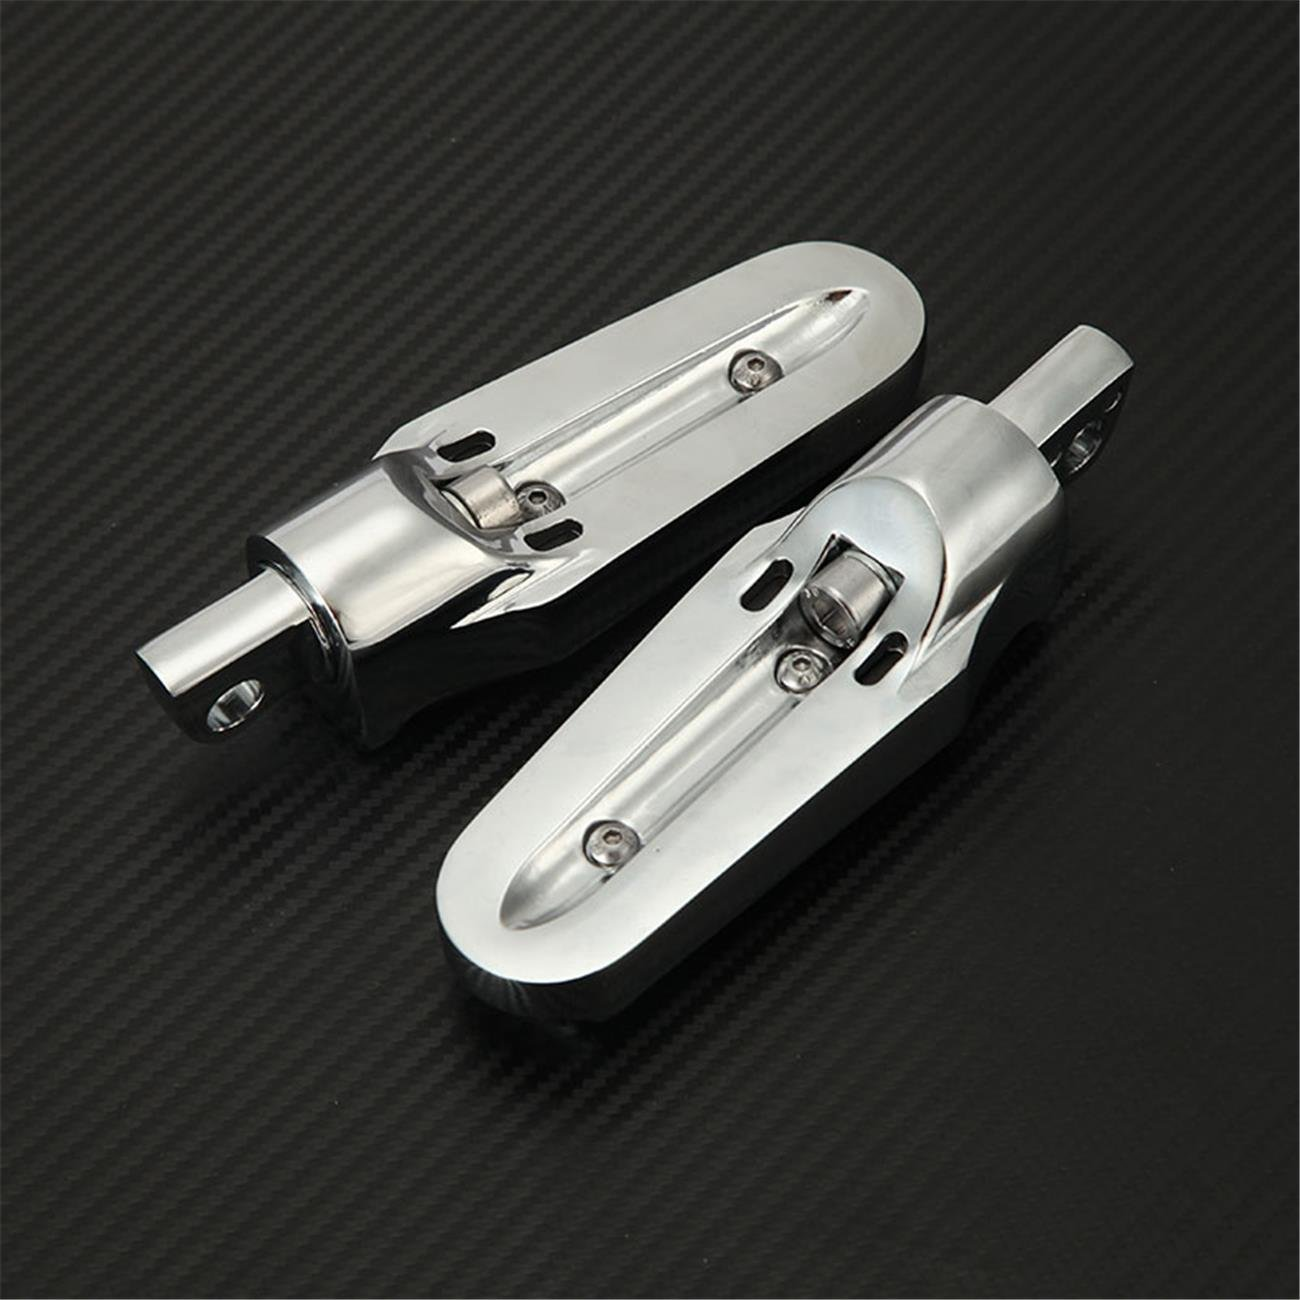 Chrome Motorcycle Footpegs INNOGLOW Front /& Rear Foot Pegs Rests Tombstone Comfort-Ride Passenger Male Mounts Footrests Fit for Harley Davidson XL Sportster V Rod 883 1200